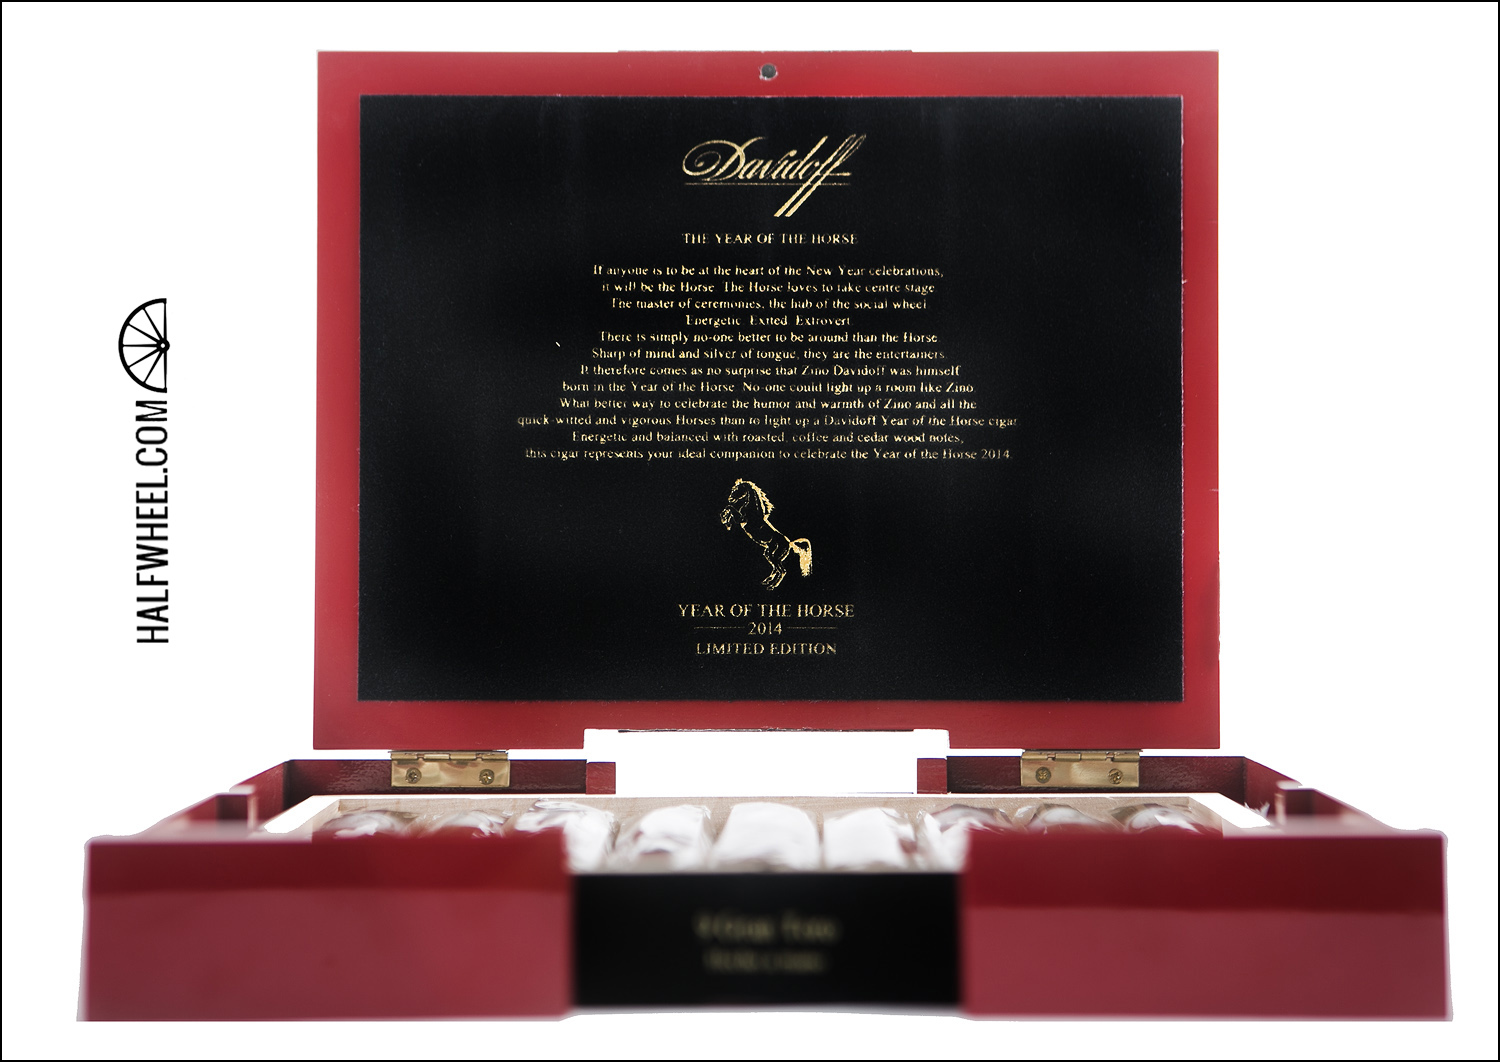 Davidoff Limited Edition 2014 Year of the Horse Box 4